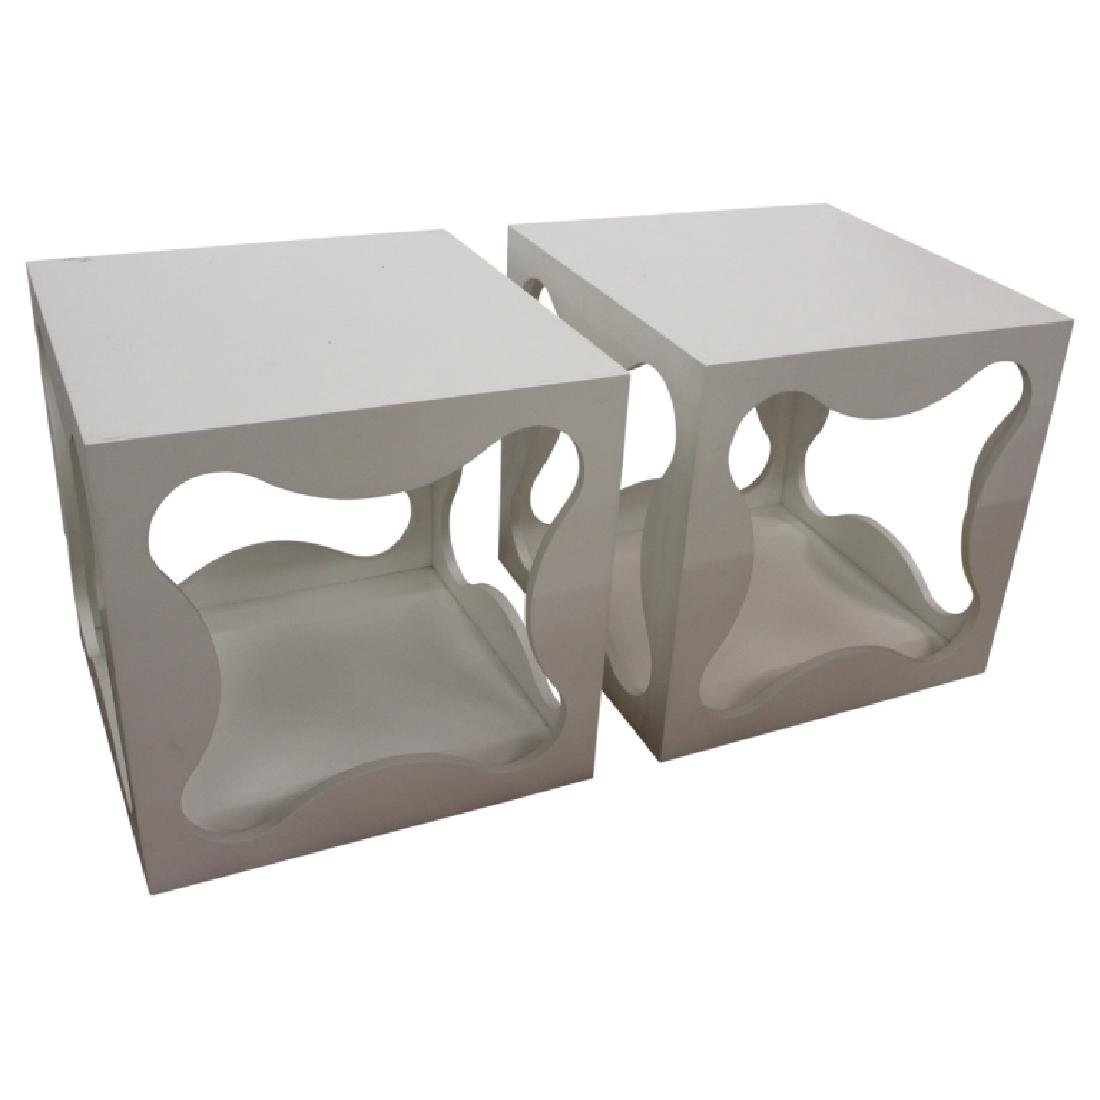 Pair of Modern Square Table Cubes